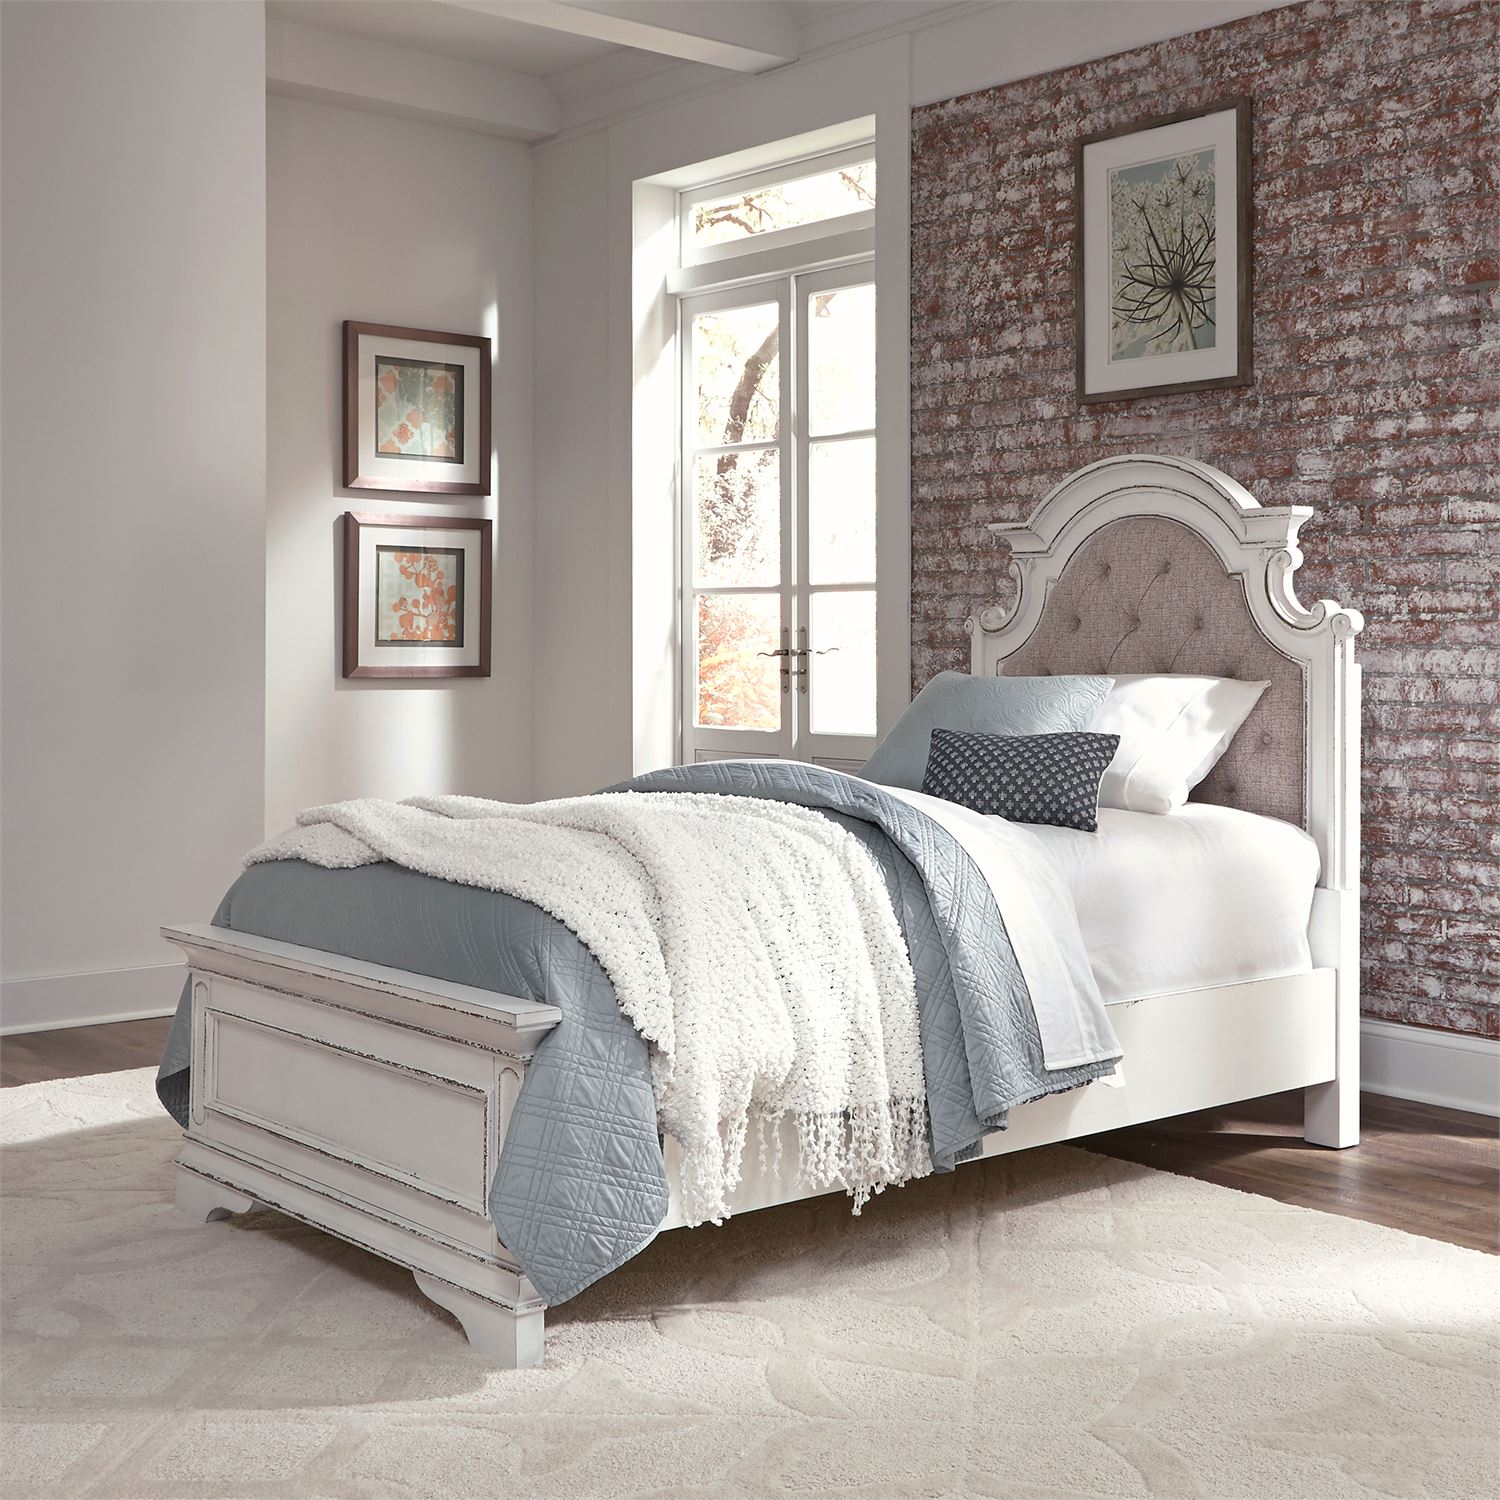 Le Grand Twin Size Upholstered Bed In Antique White Kids